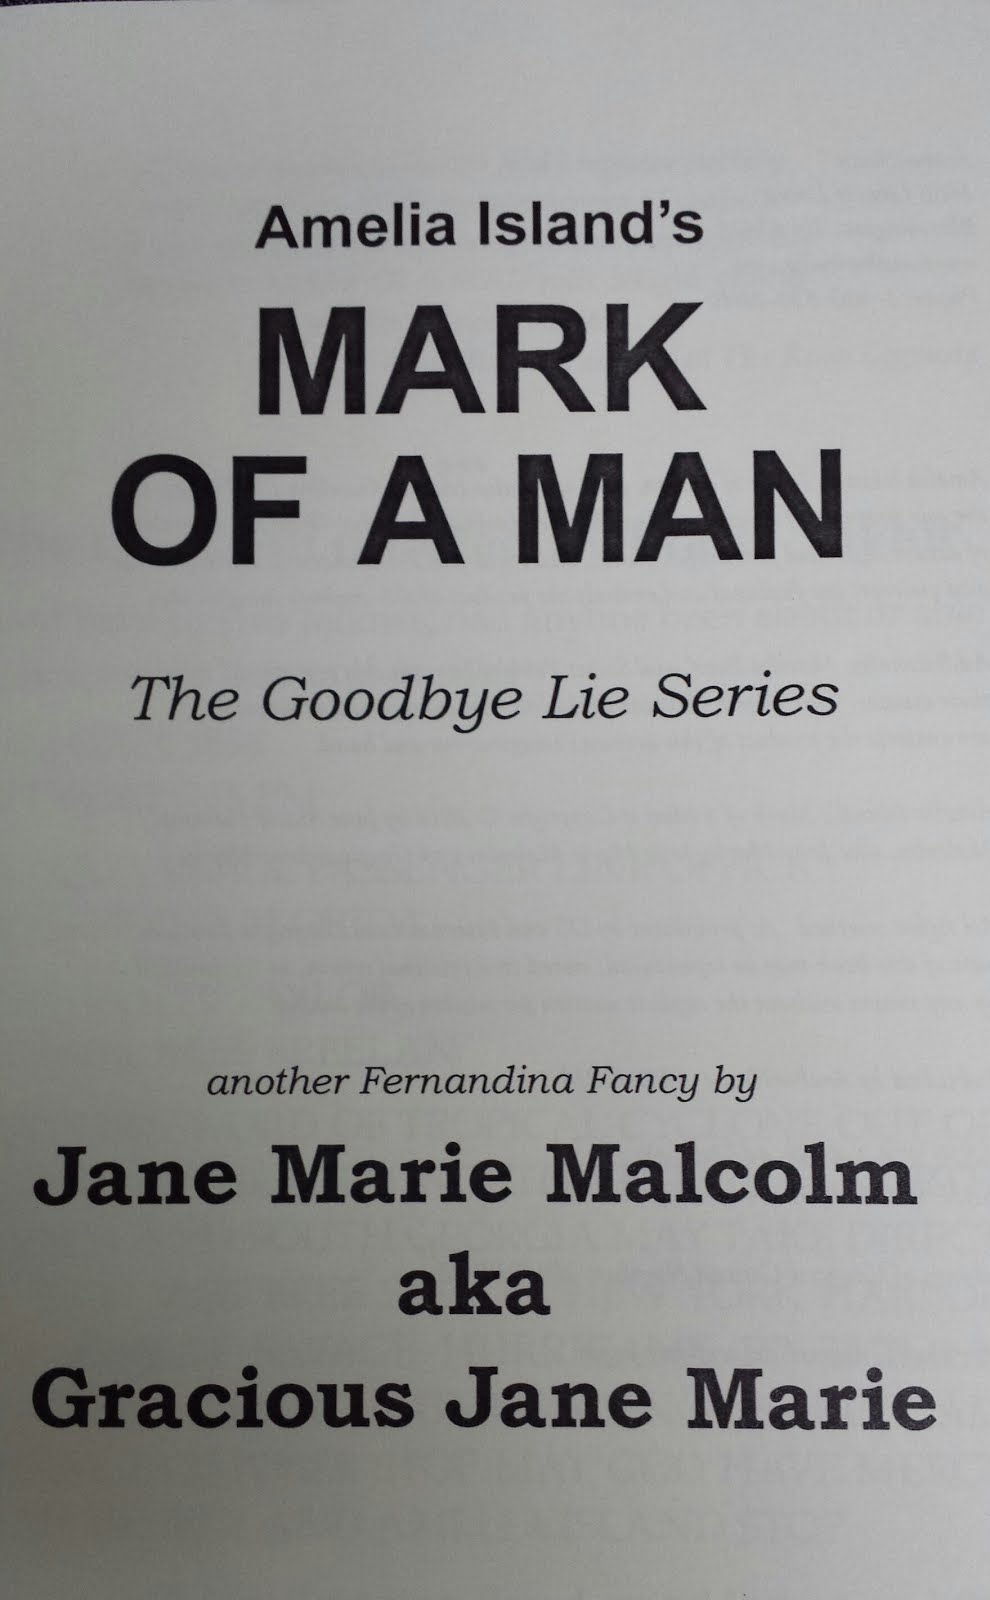 Click on the Title Page below to read the Opening Pages of Amelia Island's Mark of a Man